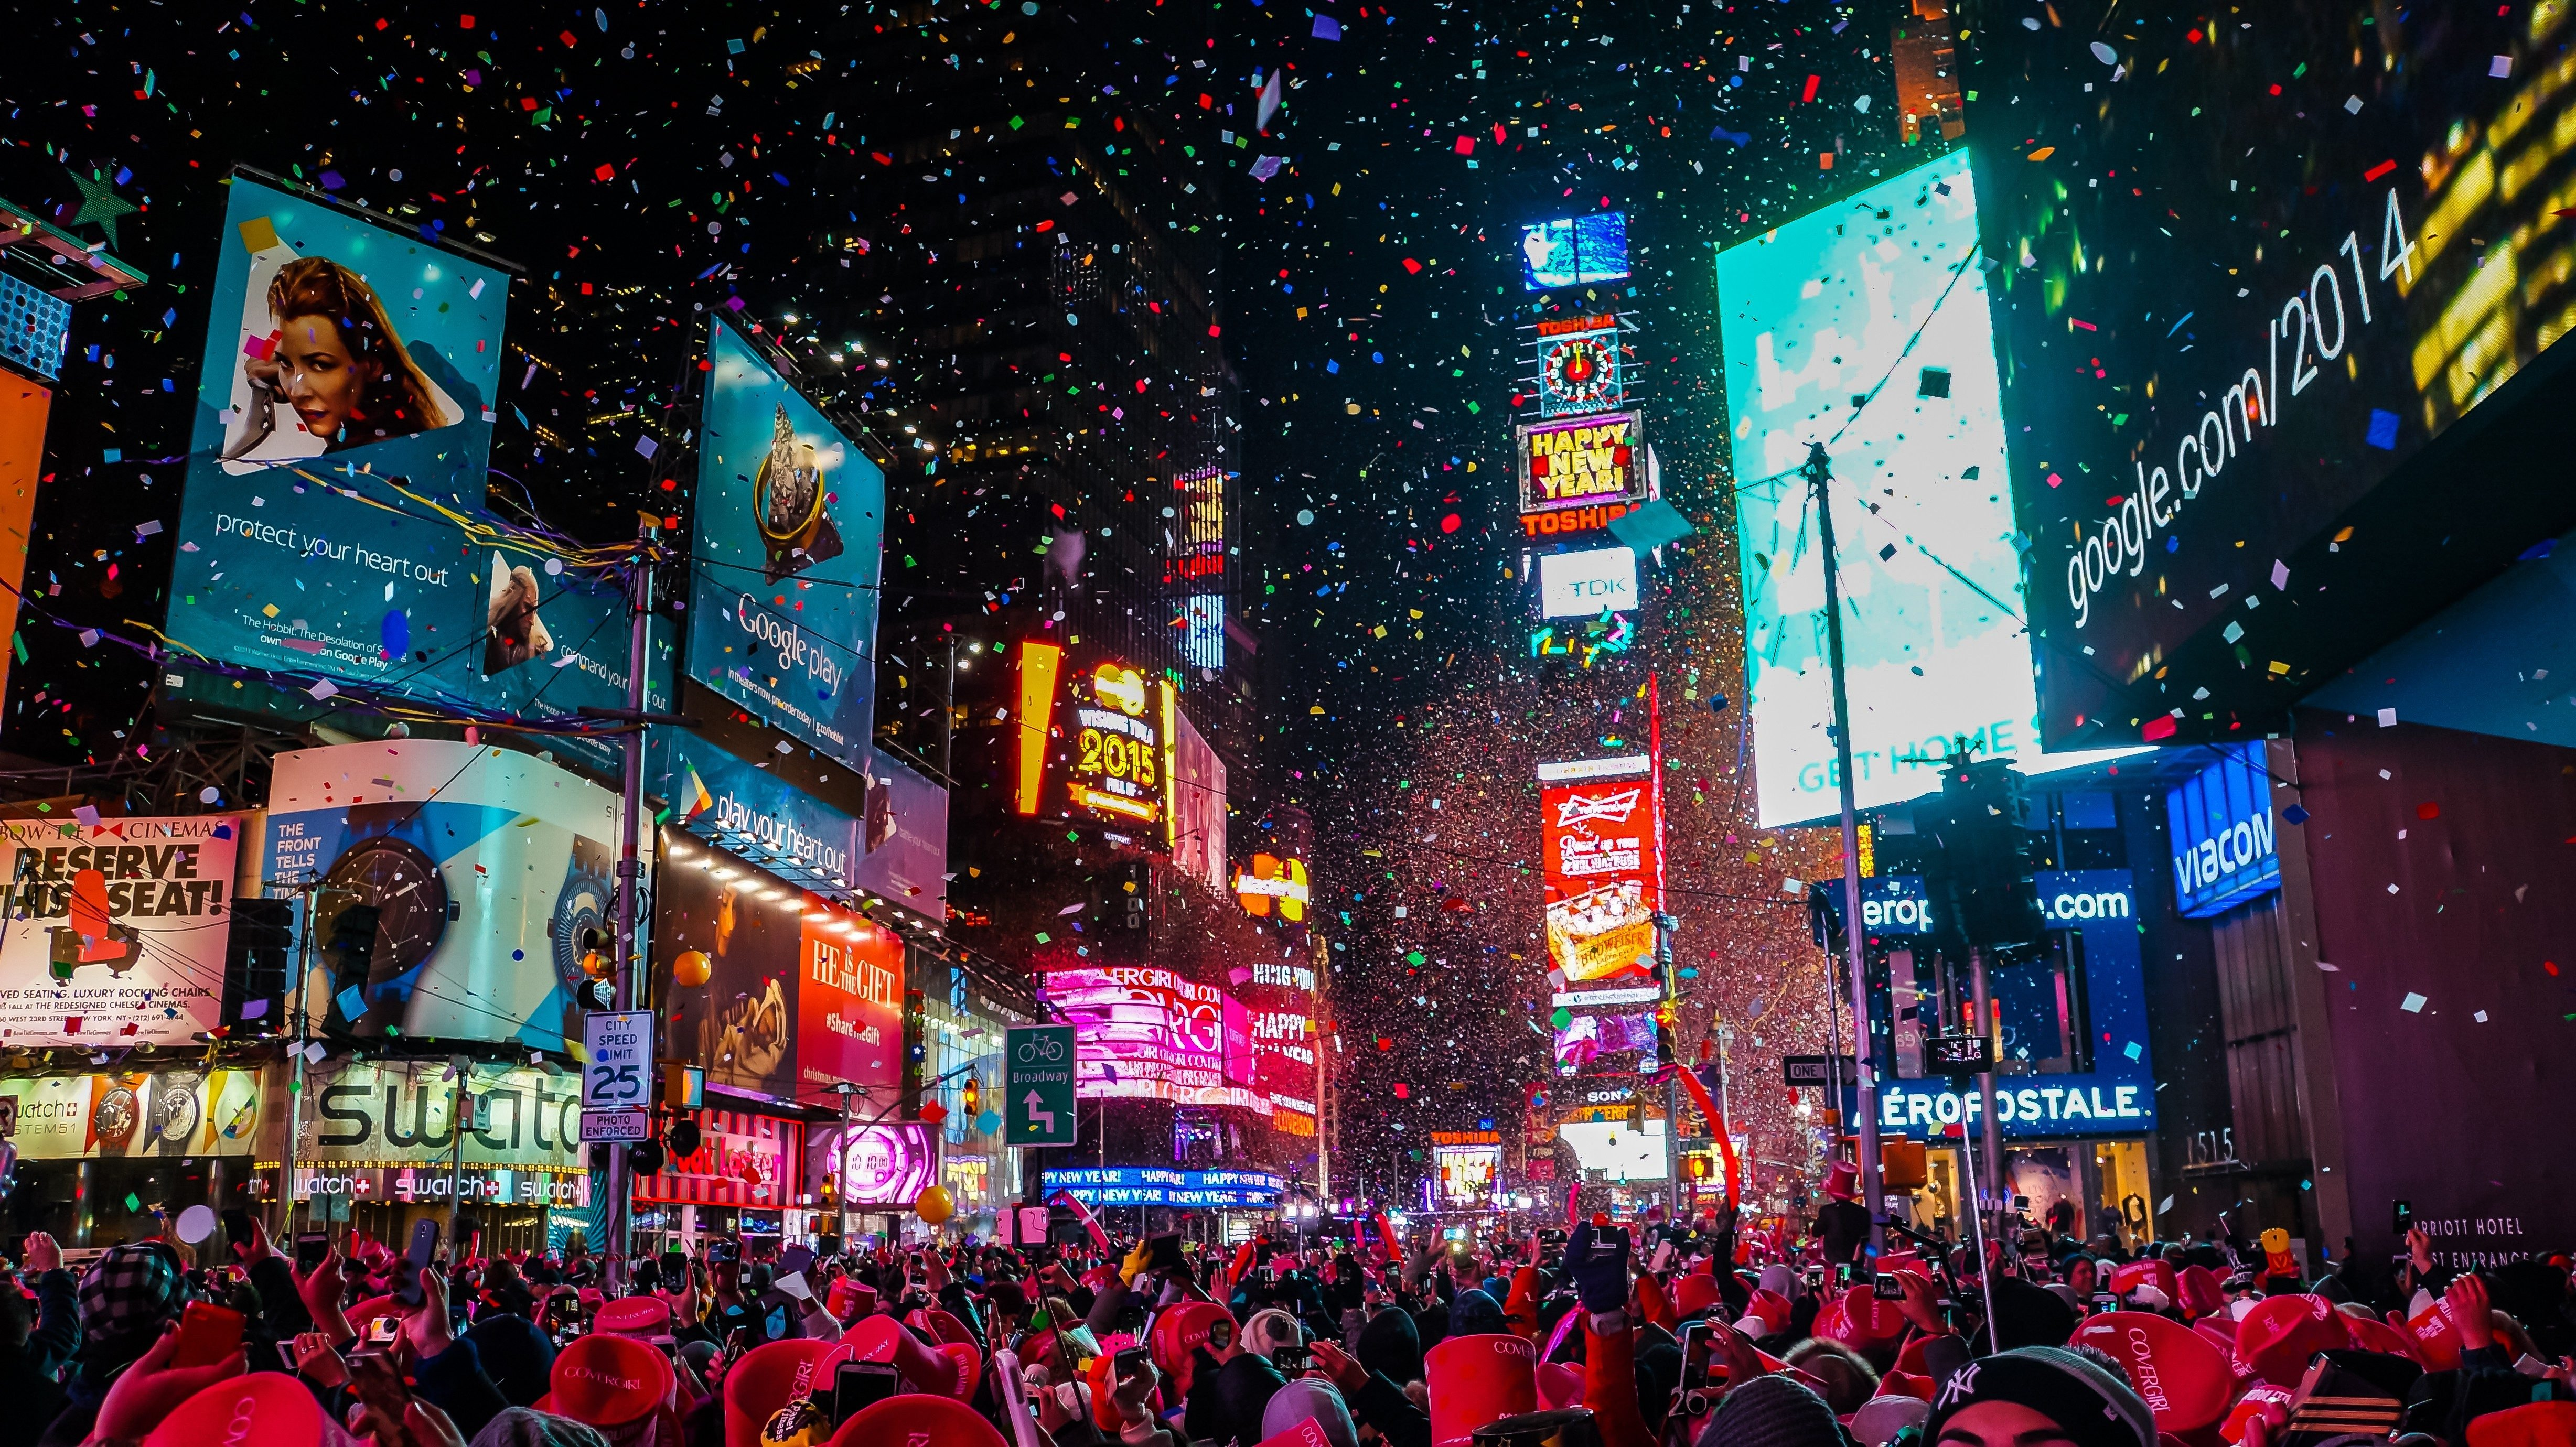 New York City, USA, January 1, 2015, Atmospheric new year's eve celebration on famous times square intersection after midnight with countless happy people enjoying the party; Shutterstock ID 1418089289; Job (TFH, TOH, RD, BNB, CWM, CM): RD